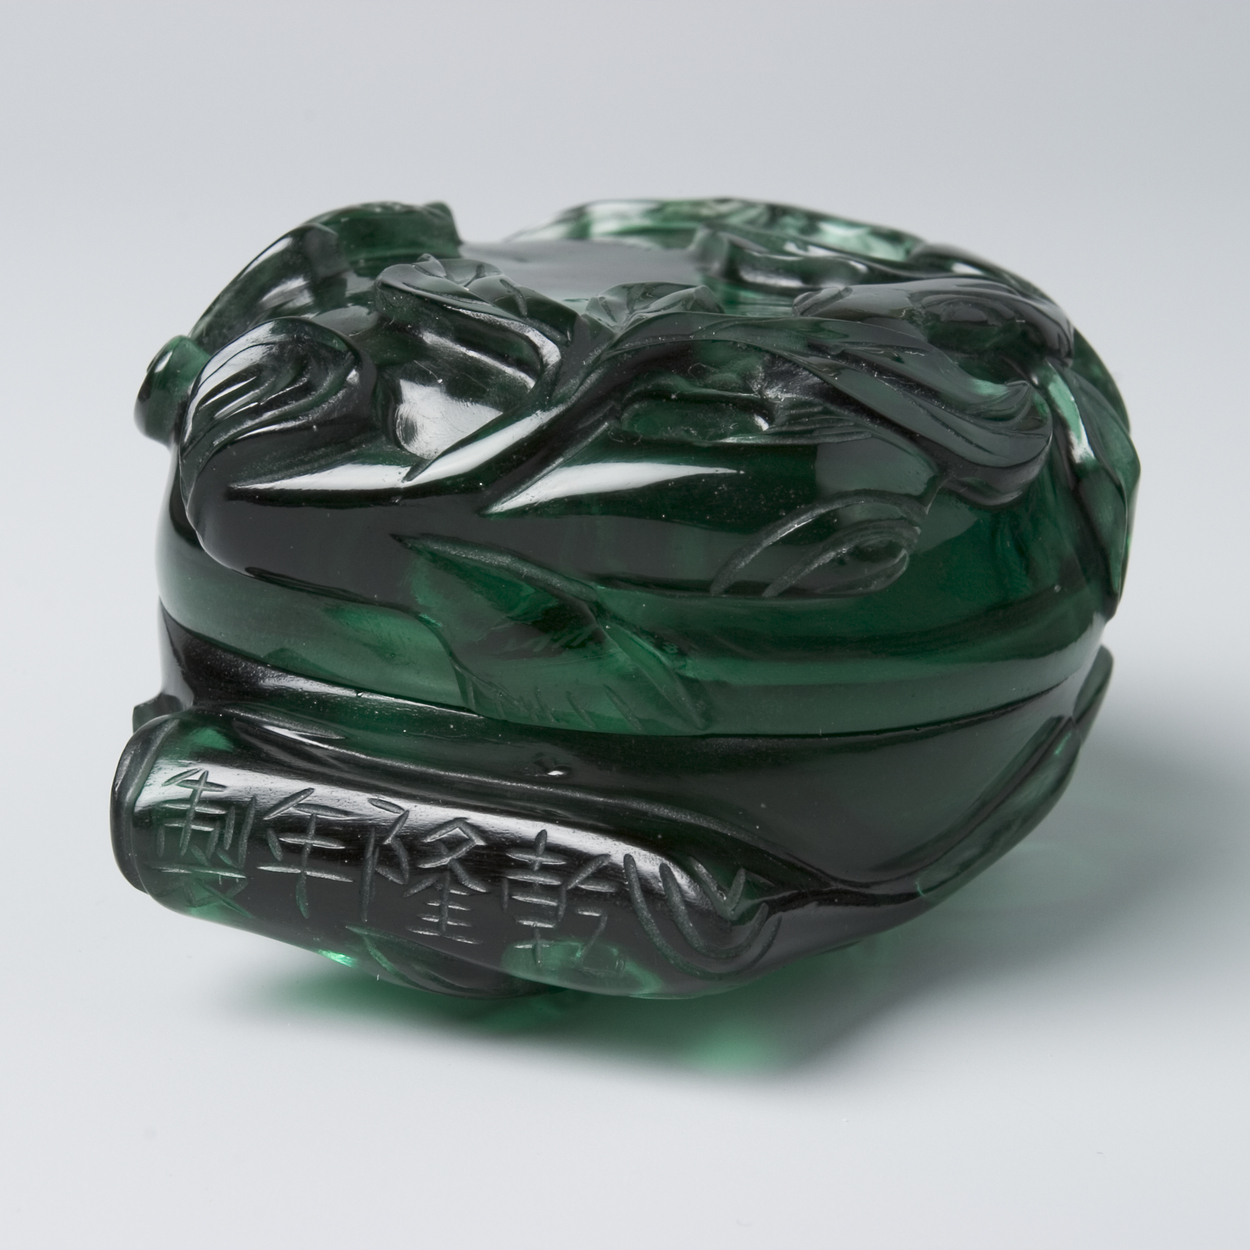 Green glass box in the shape of a peach, China late 18th century